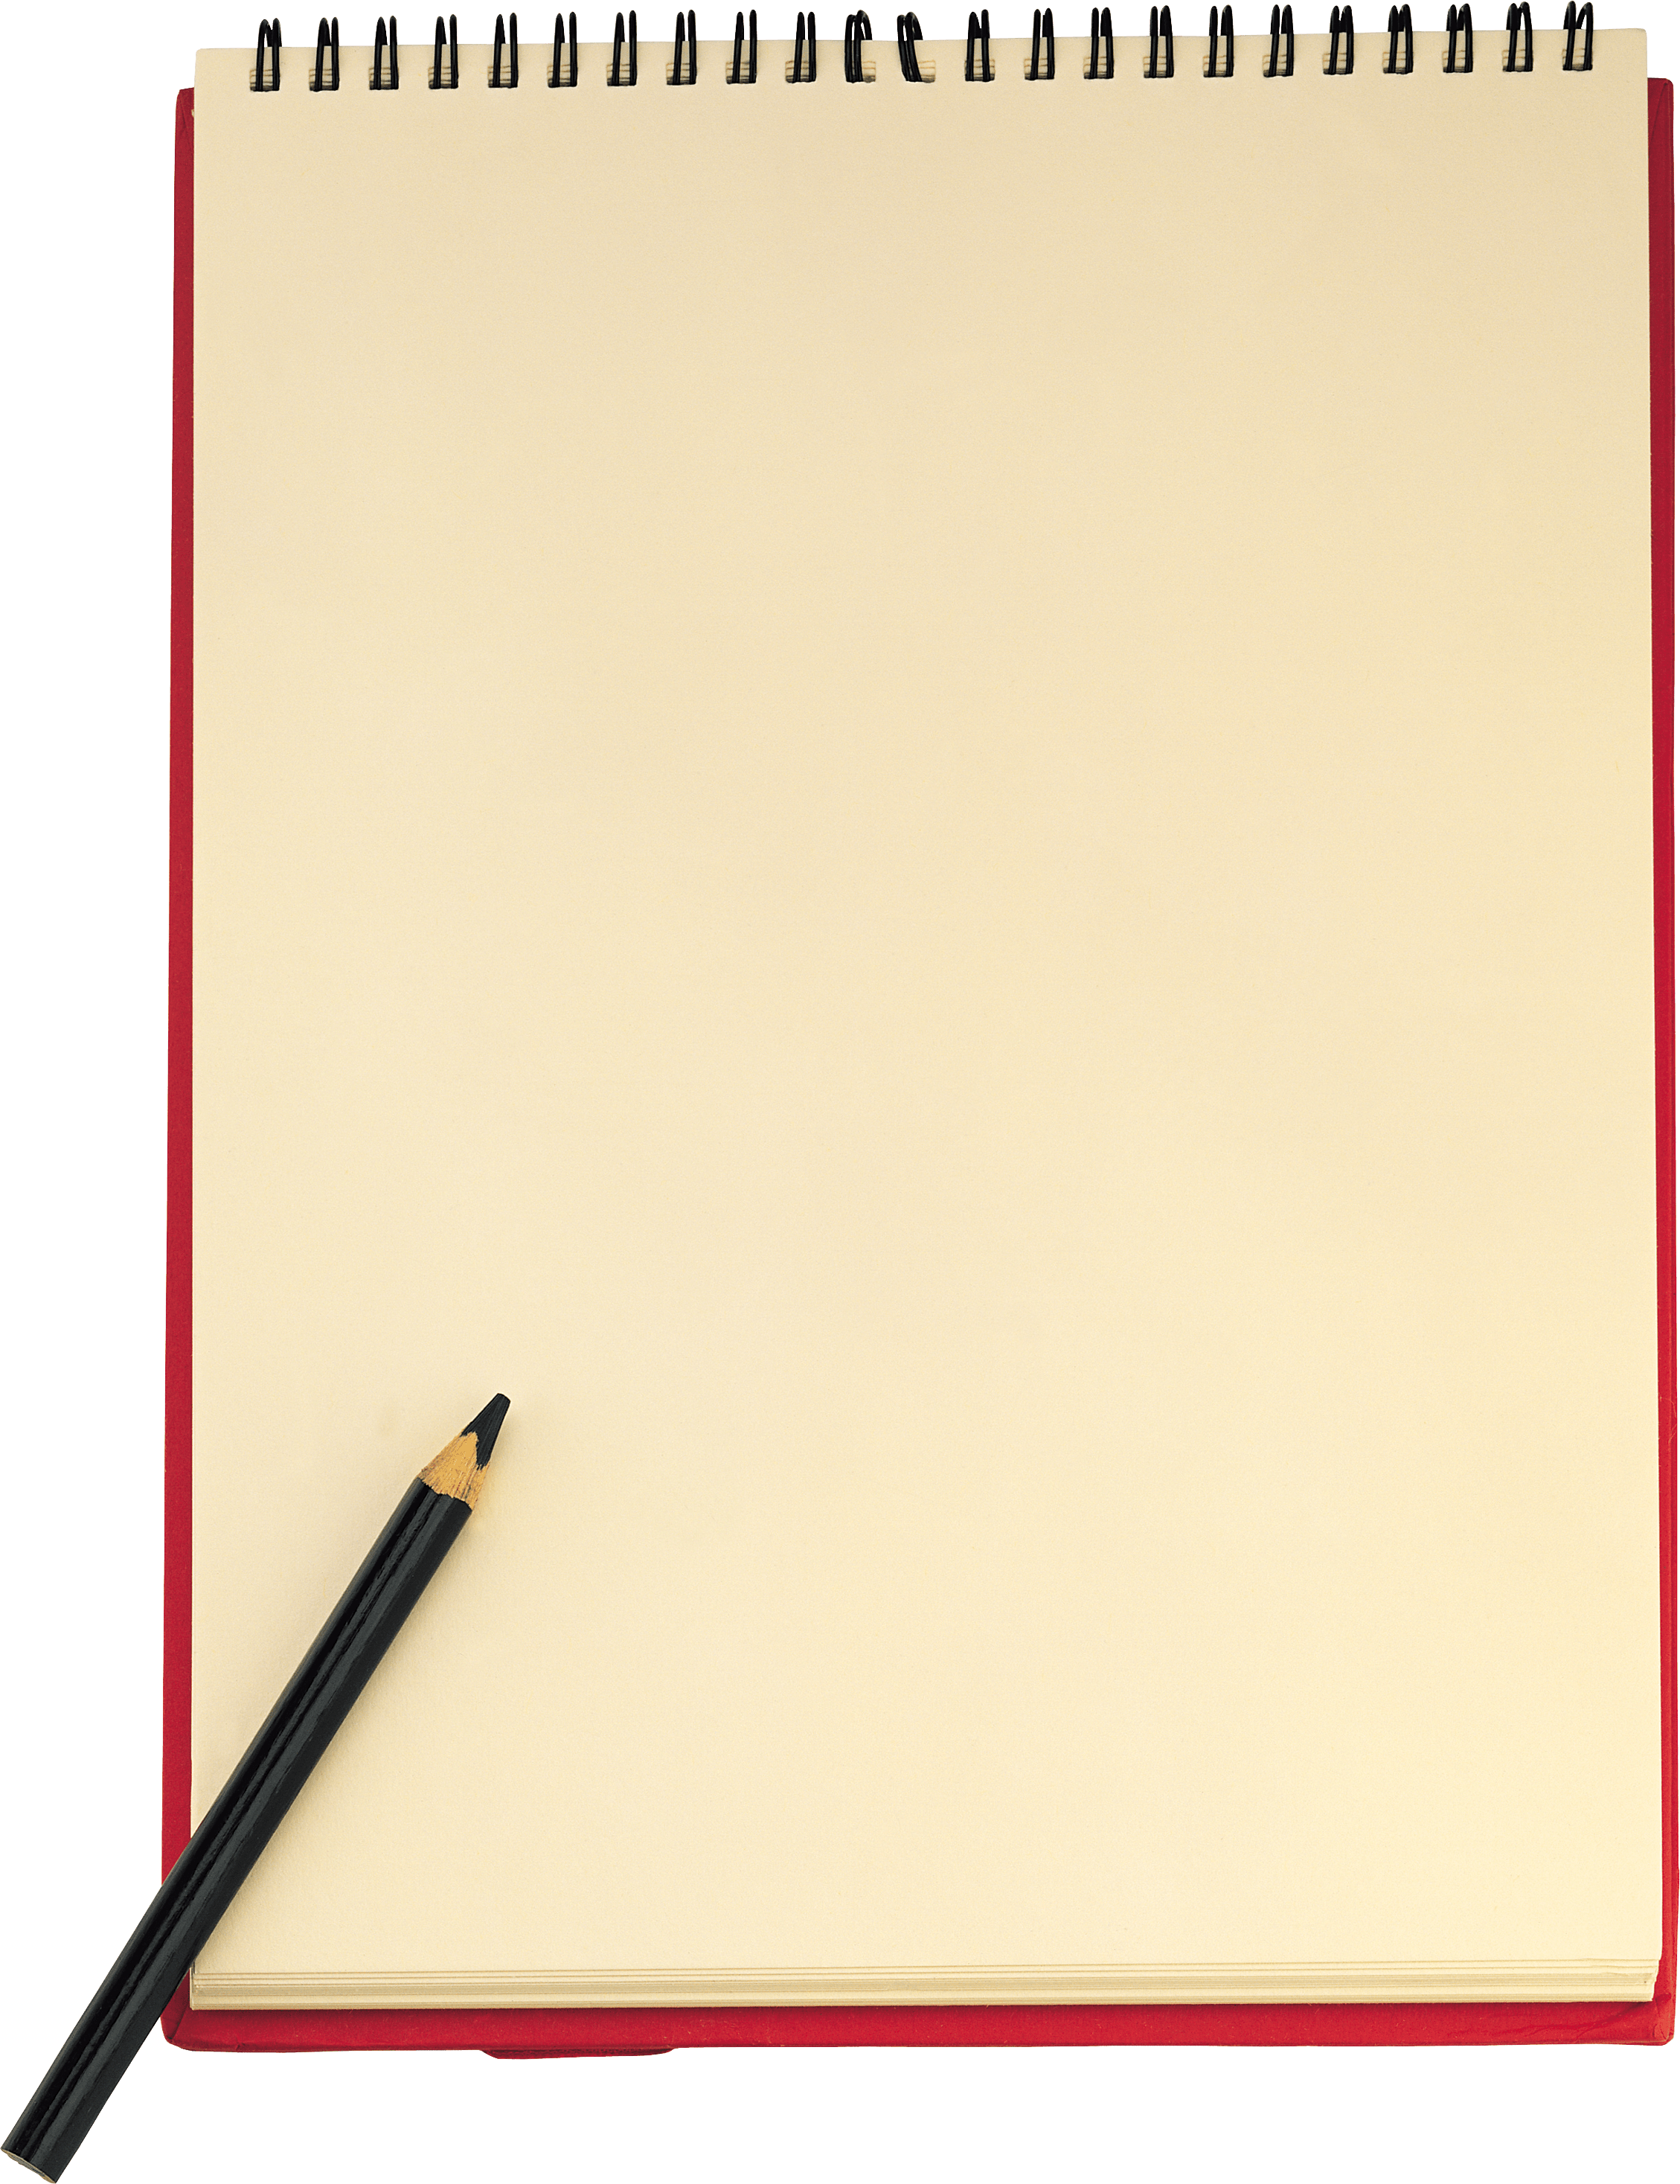 notepad transparent